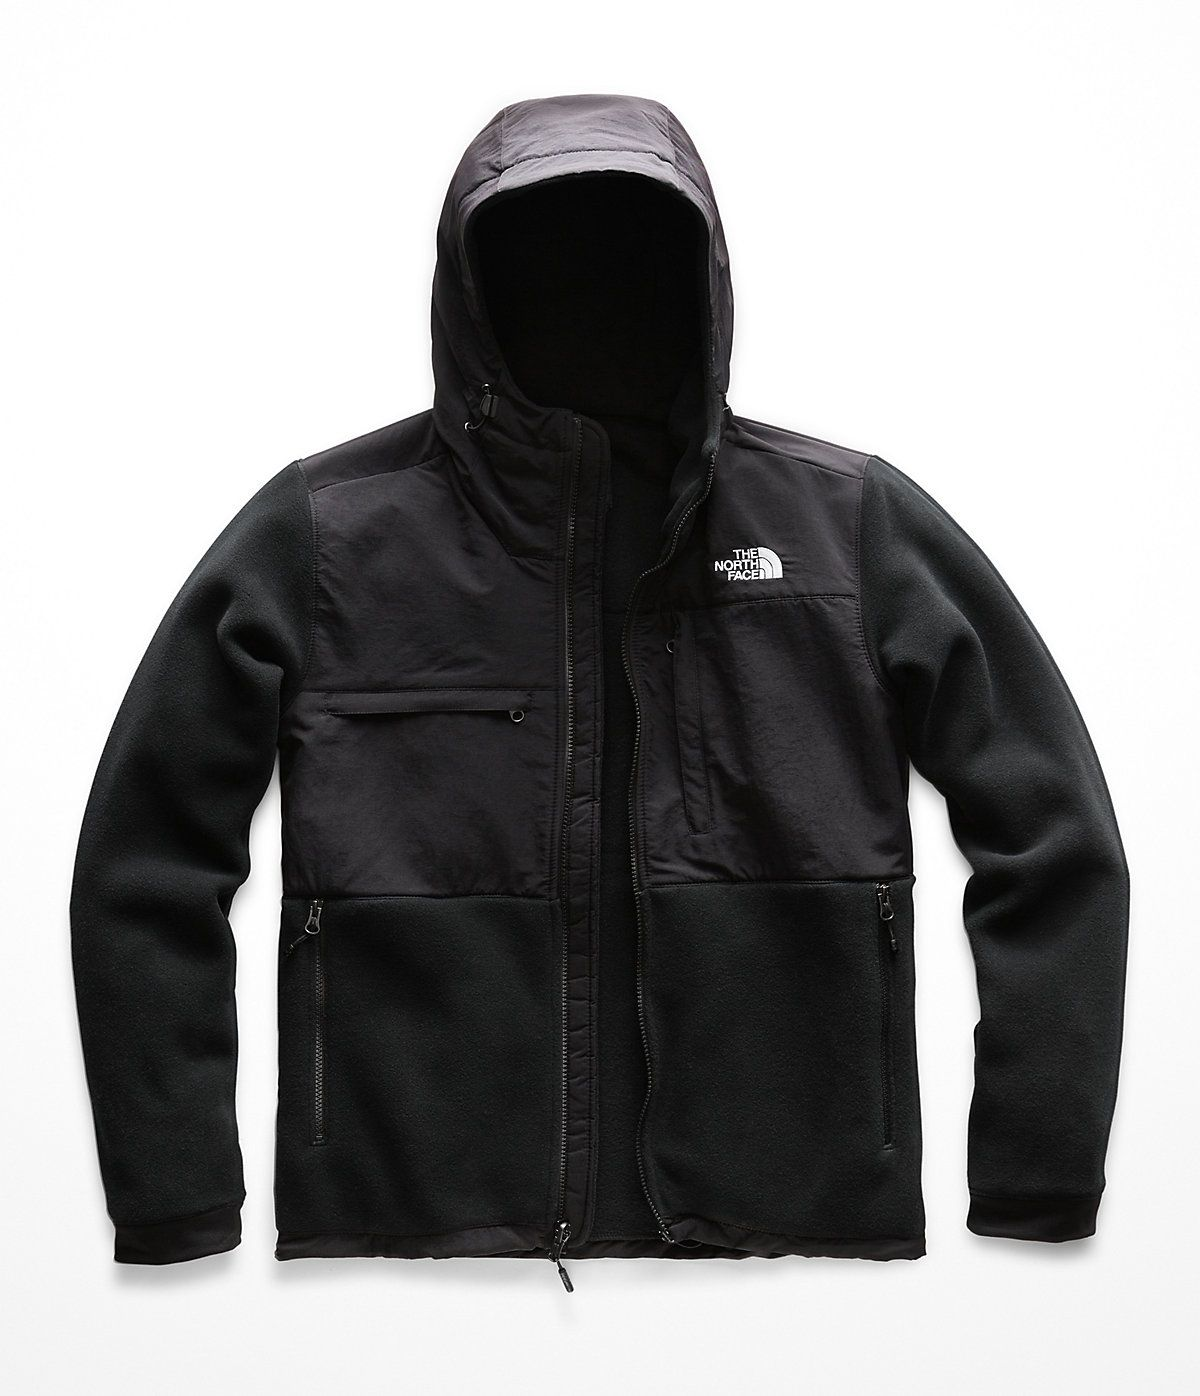 2 Color Choices NEW The North Face Men/'s Denali 2 Jacket